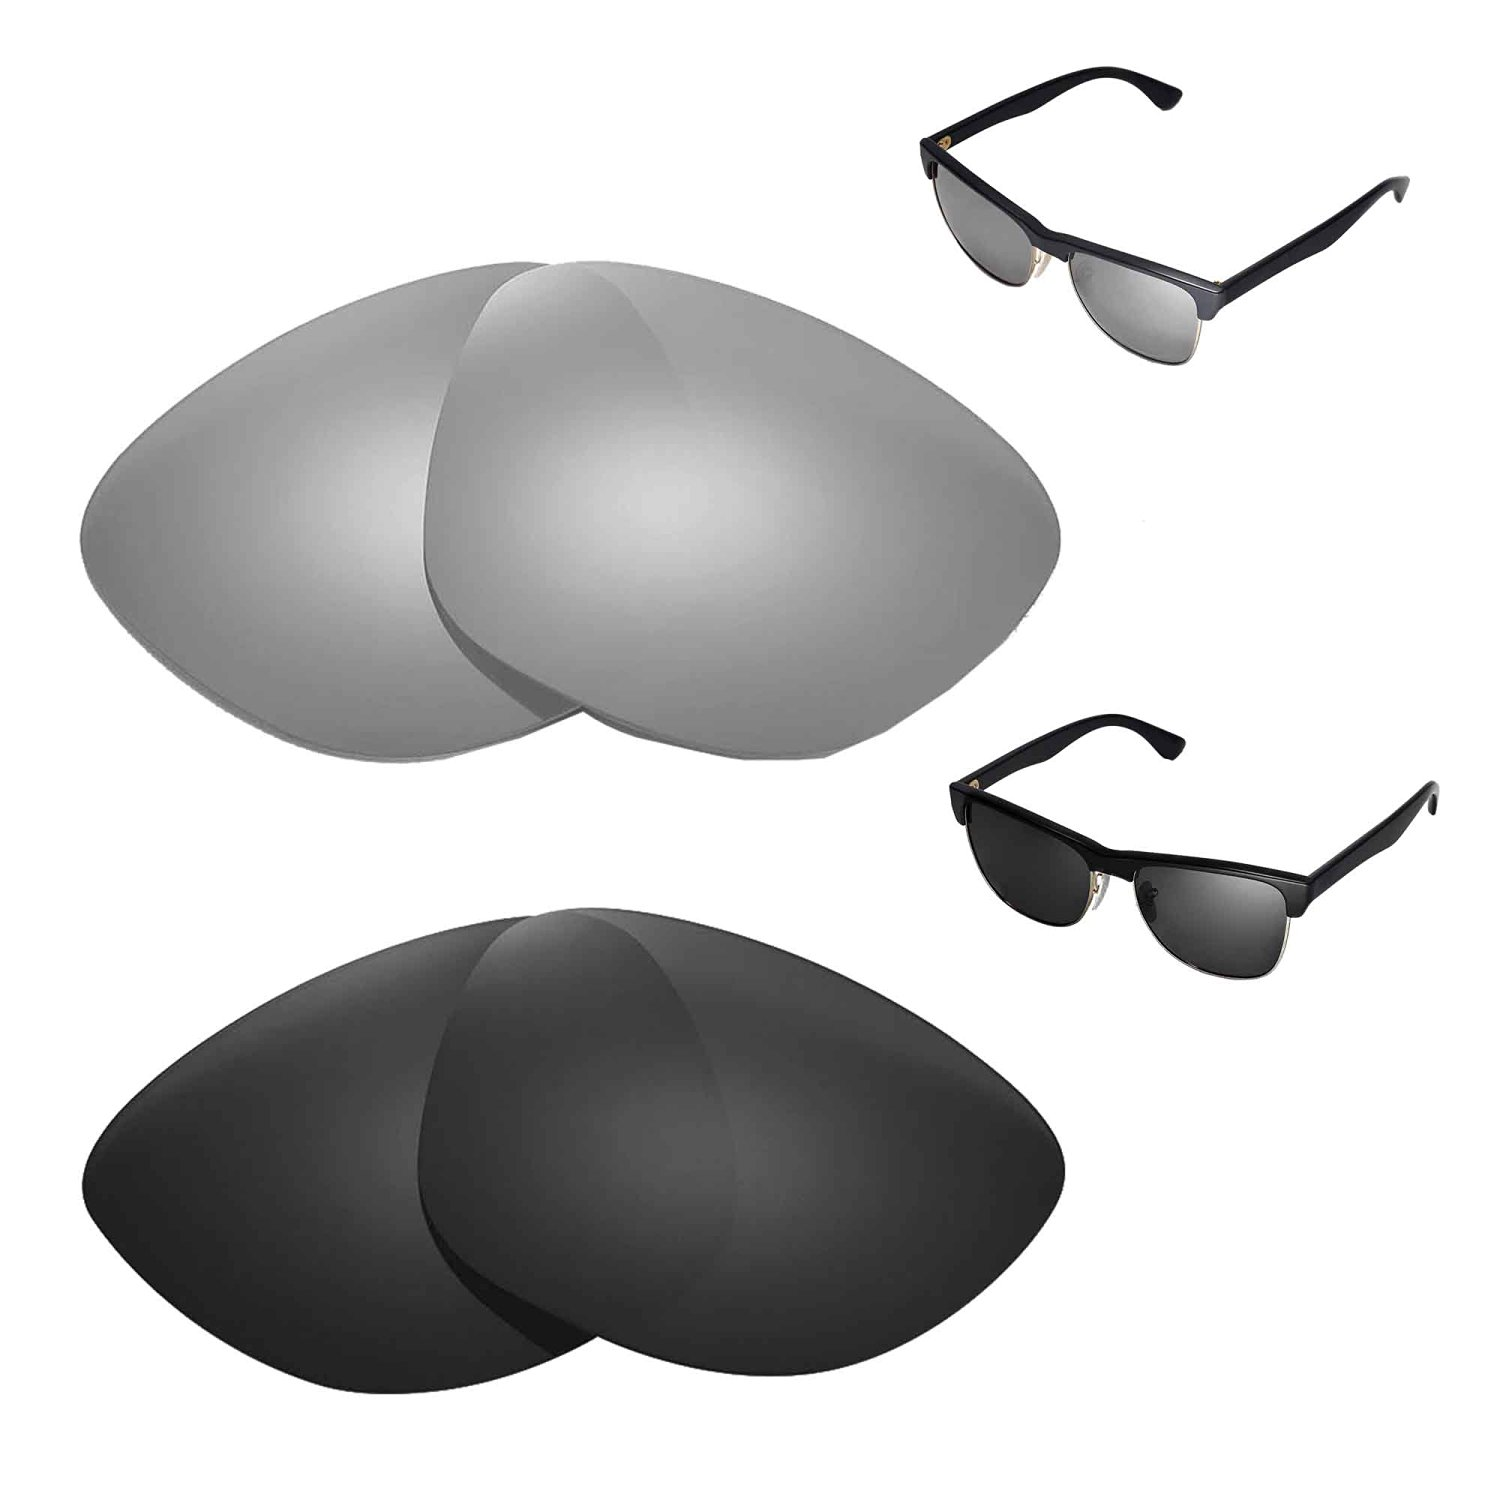 a4edbd5965755 Walleva Polarized Titanium + Black Replacement Lenses for Ray-Ban RB4175  57mm